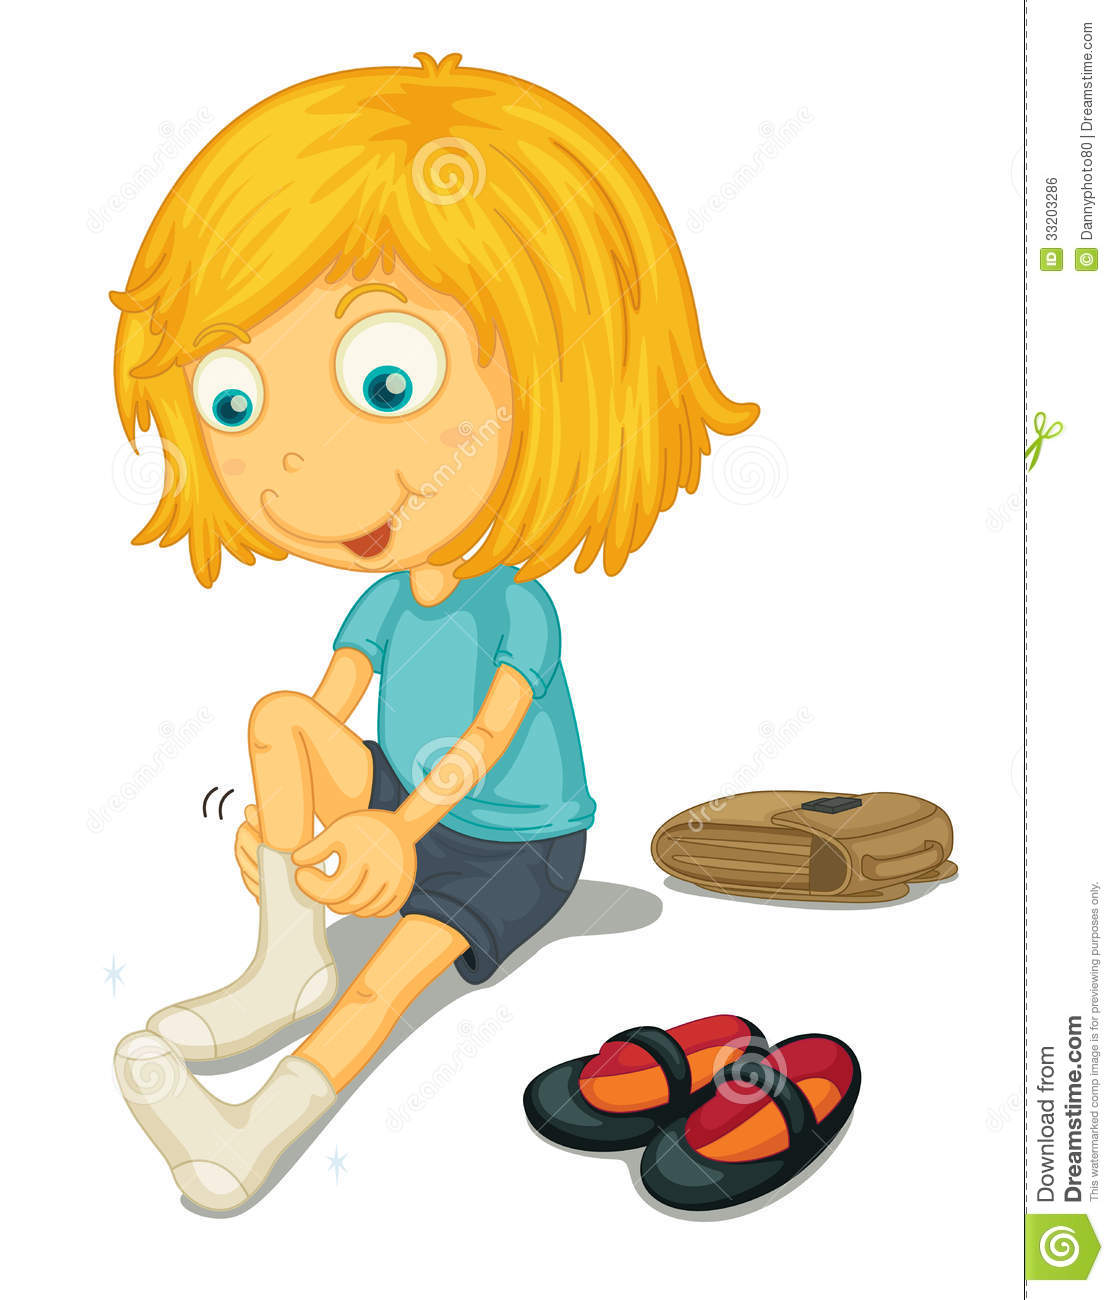 Coat clipart shoe Clipart clipart Girl on coat